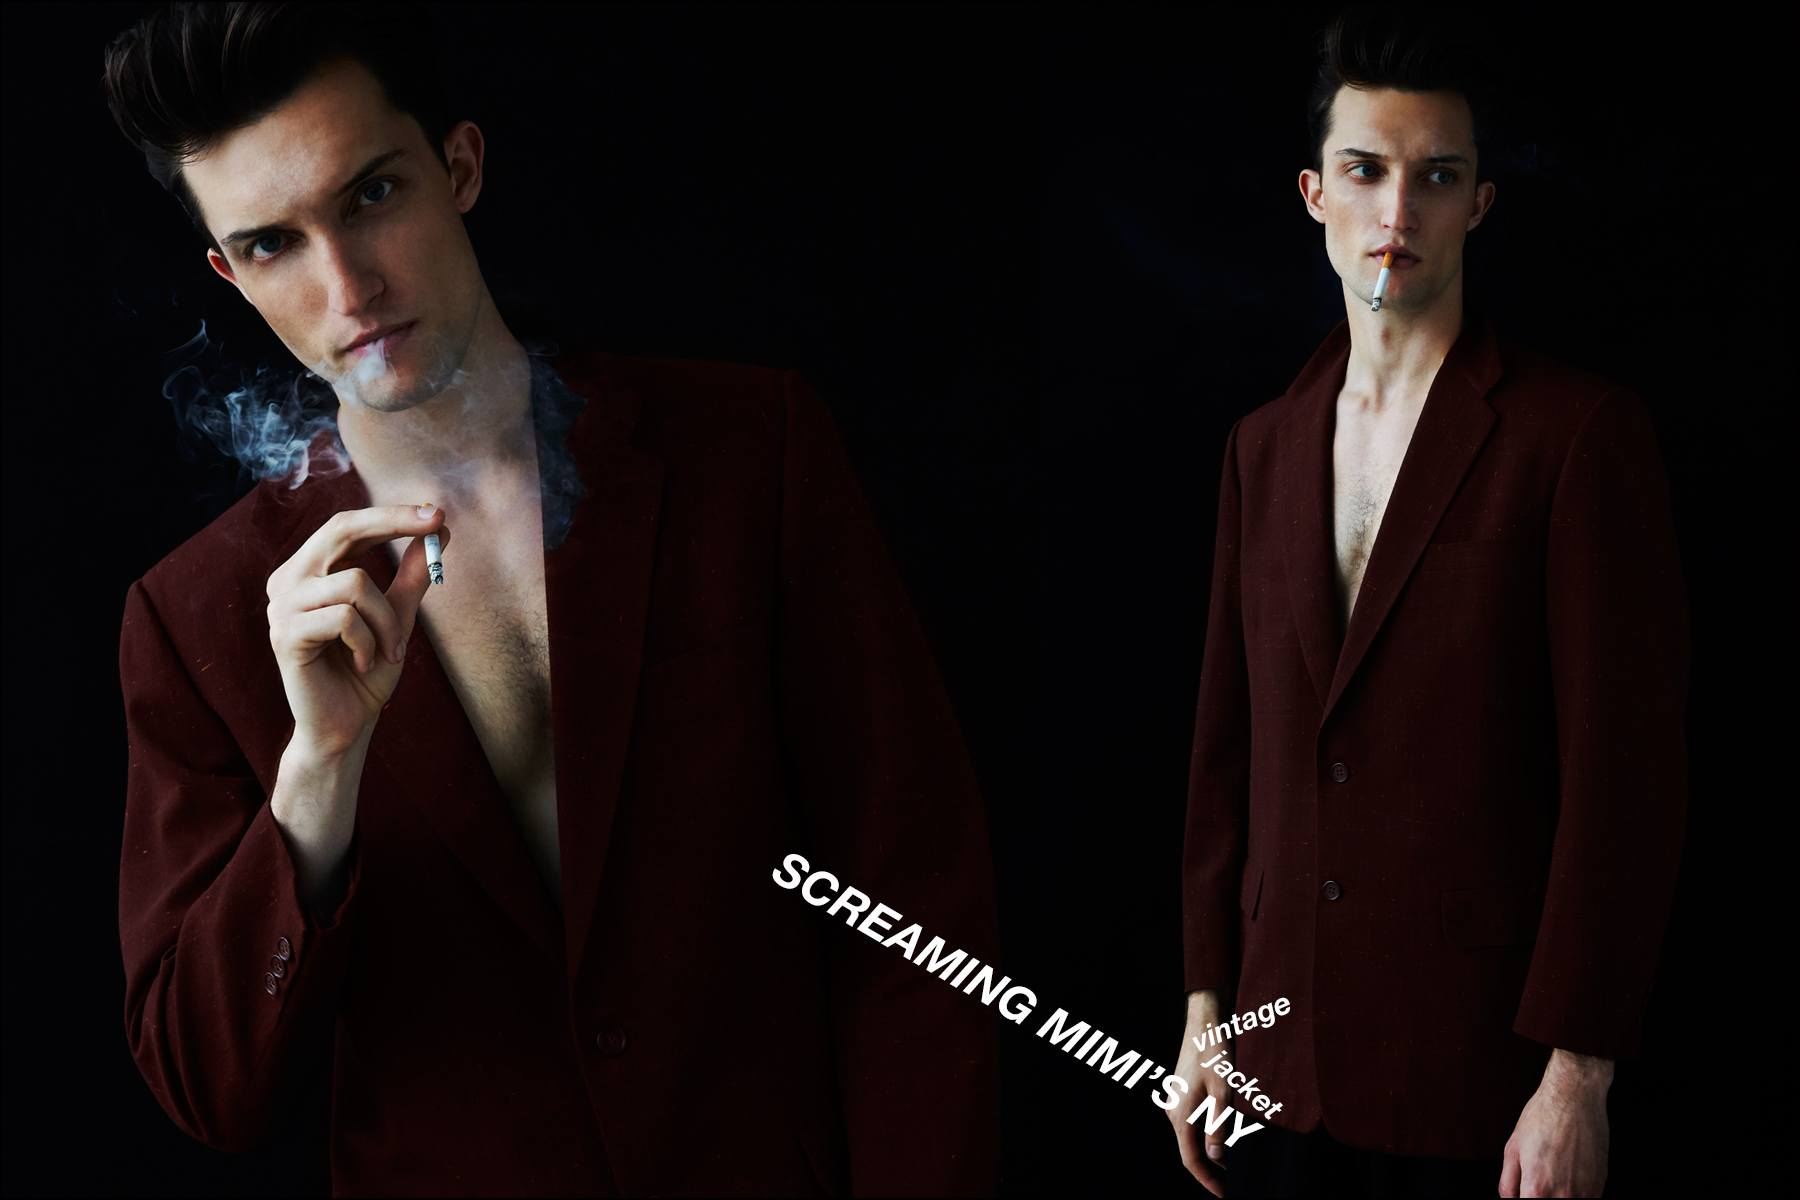 Male model Max Von Isser photographed in vintage suit jackets by Alexander Thompson for Ponyboy magazine NY.